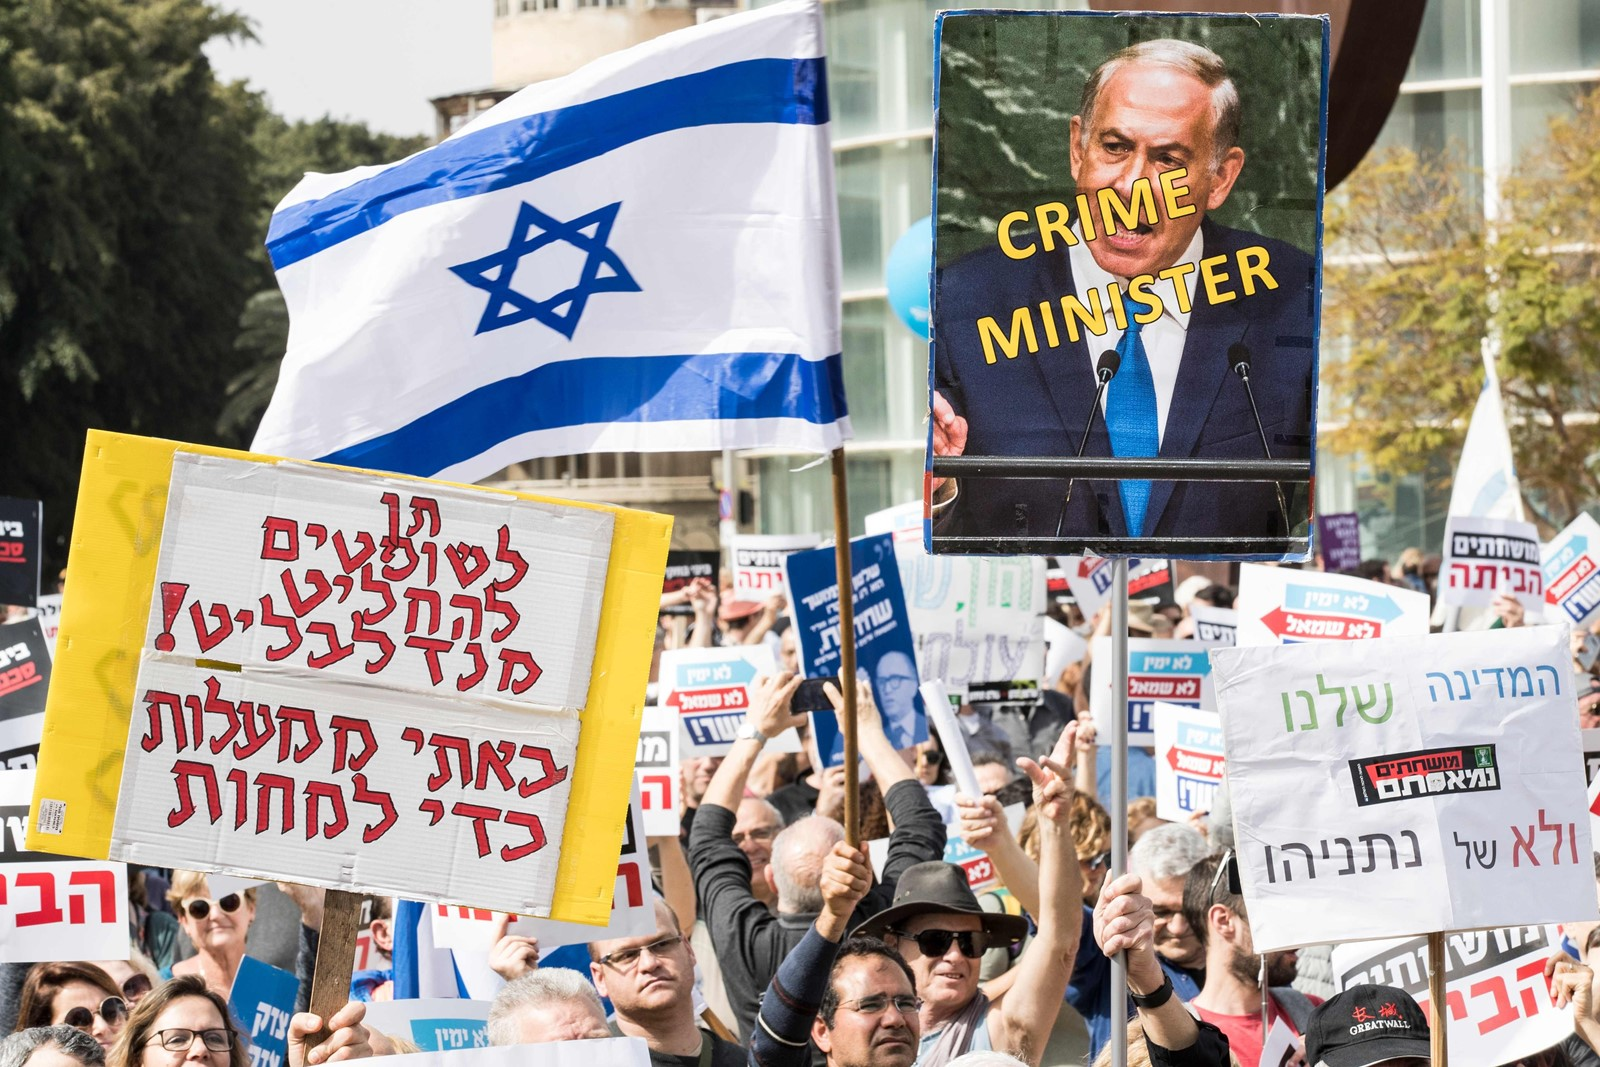 Israelis protest in Tel Aviv on Friday against Prime Minister Benjamin Netanyahu after police recommended he be indicted on several corruption charges. — Photograph: Jack Guez/Agence France-Presse/Getty Images.